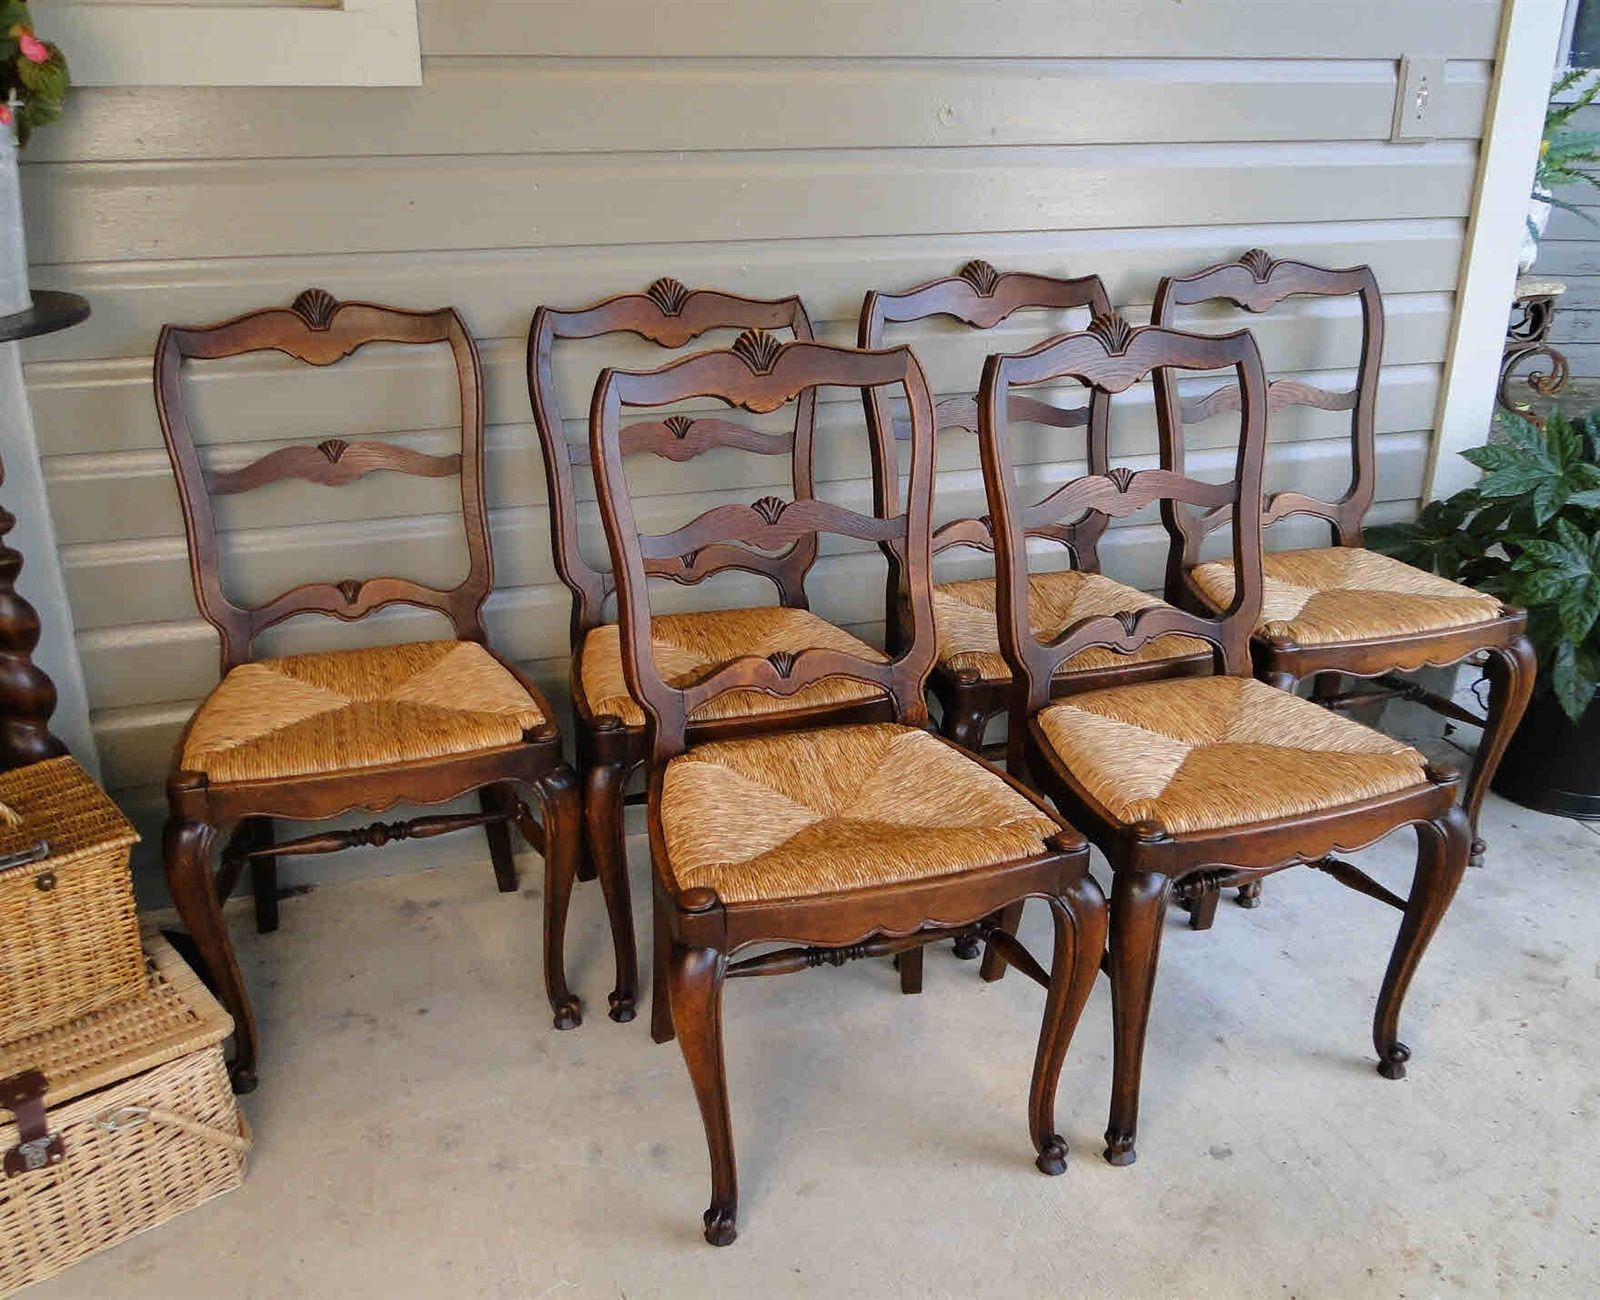 French Antique Dining Chairs with Rush Seats and Tall Backs, Cabriole Legs and Stretchers